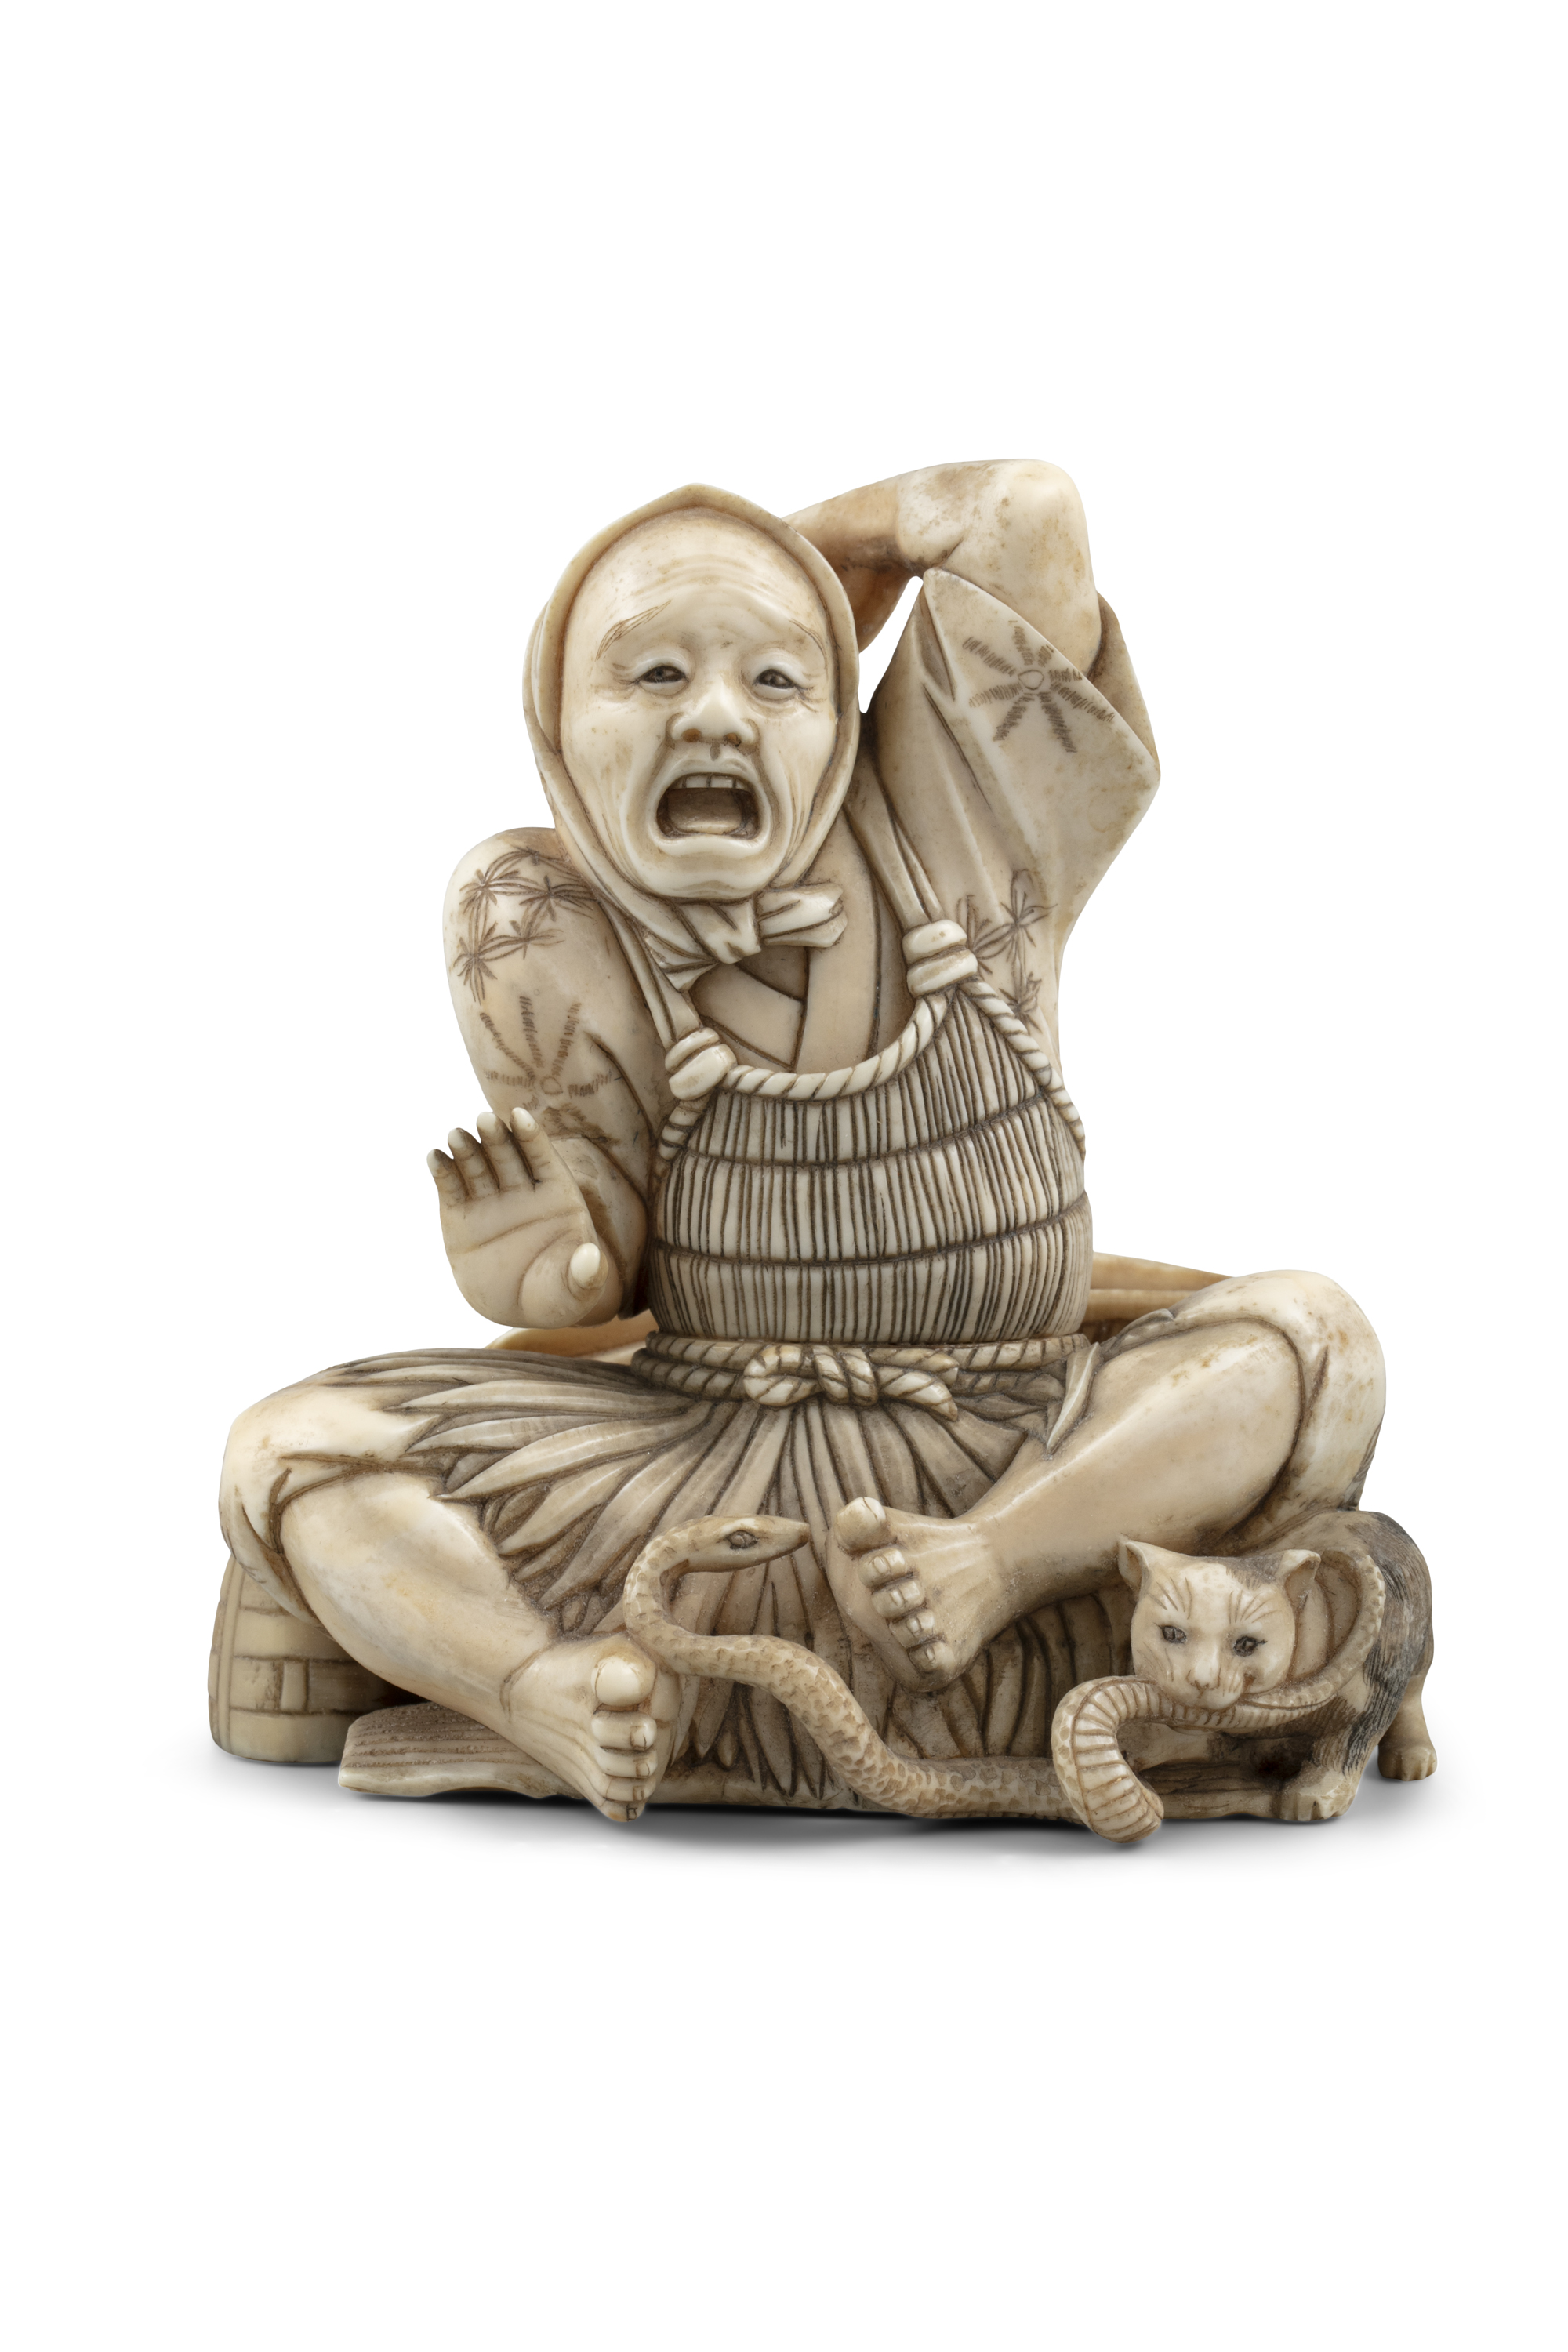 *MASAHIDE 正秀: A CARVED IVORY OKIMONO OF SCARED MAN WITH A CAT AND A SNAKE Japan, Meiji period,